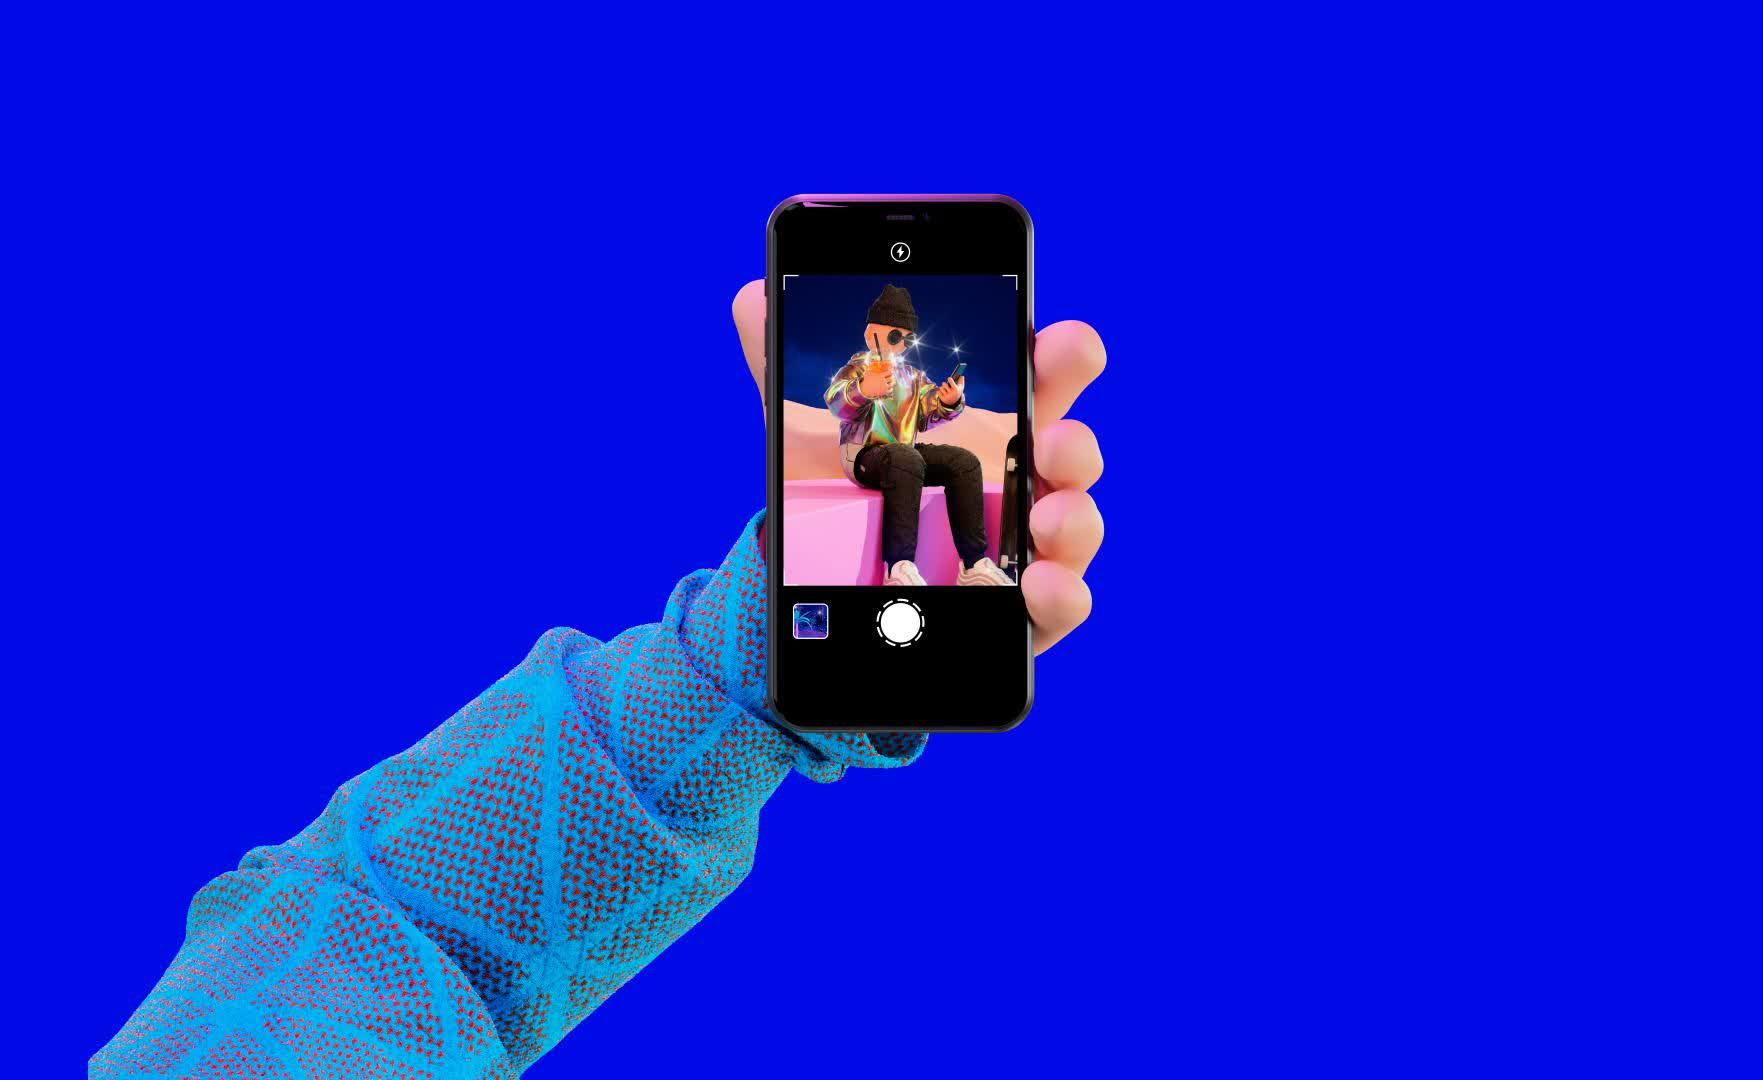 Poparazzi is the 'anti-selfie' photo app that could be a big problem for Instagram